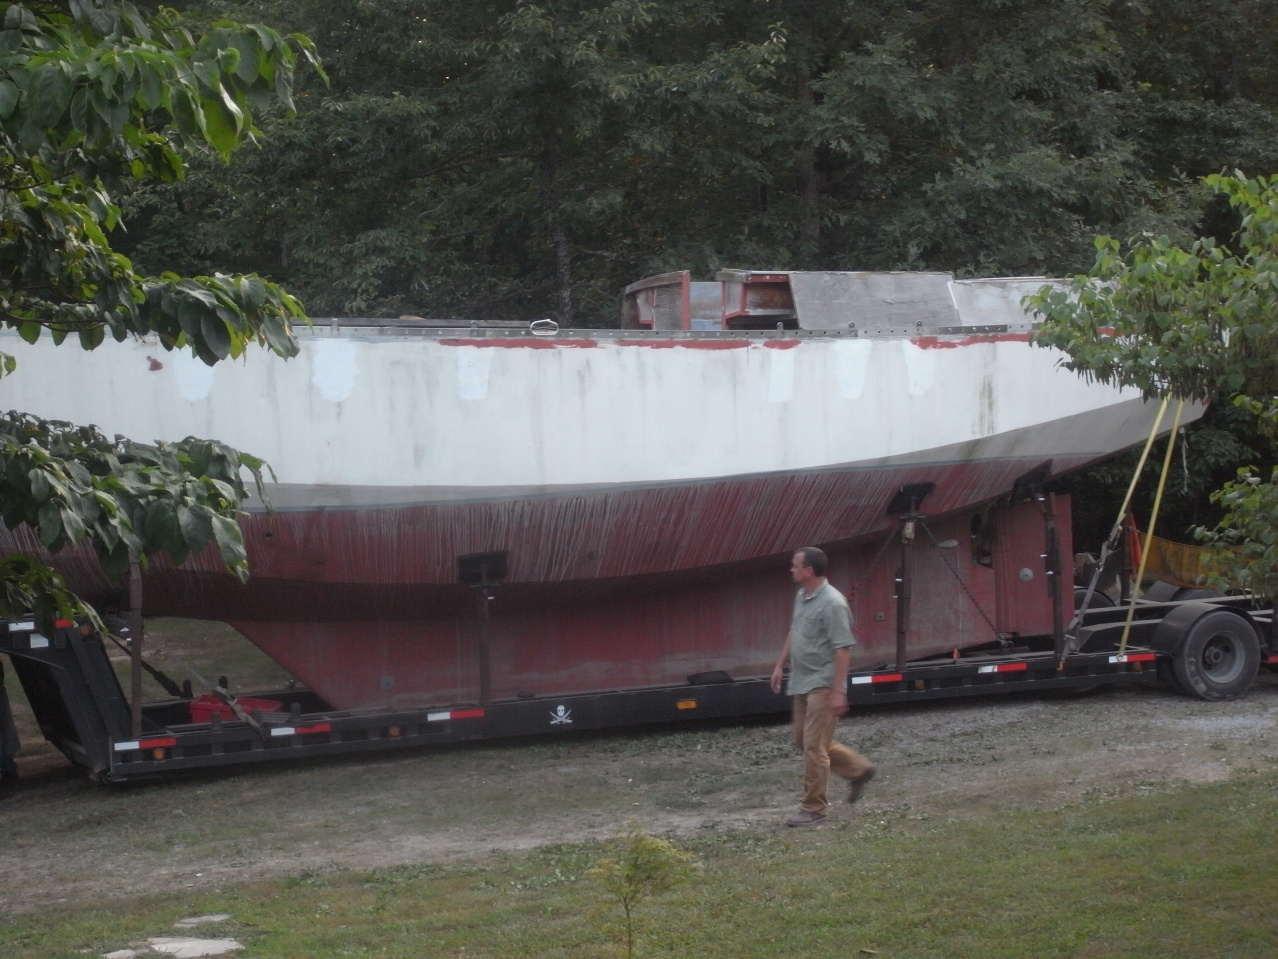 Click image for larger version  Name:boat in yard.jpg Views:468 Size:417.8 KB ID:32549